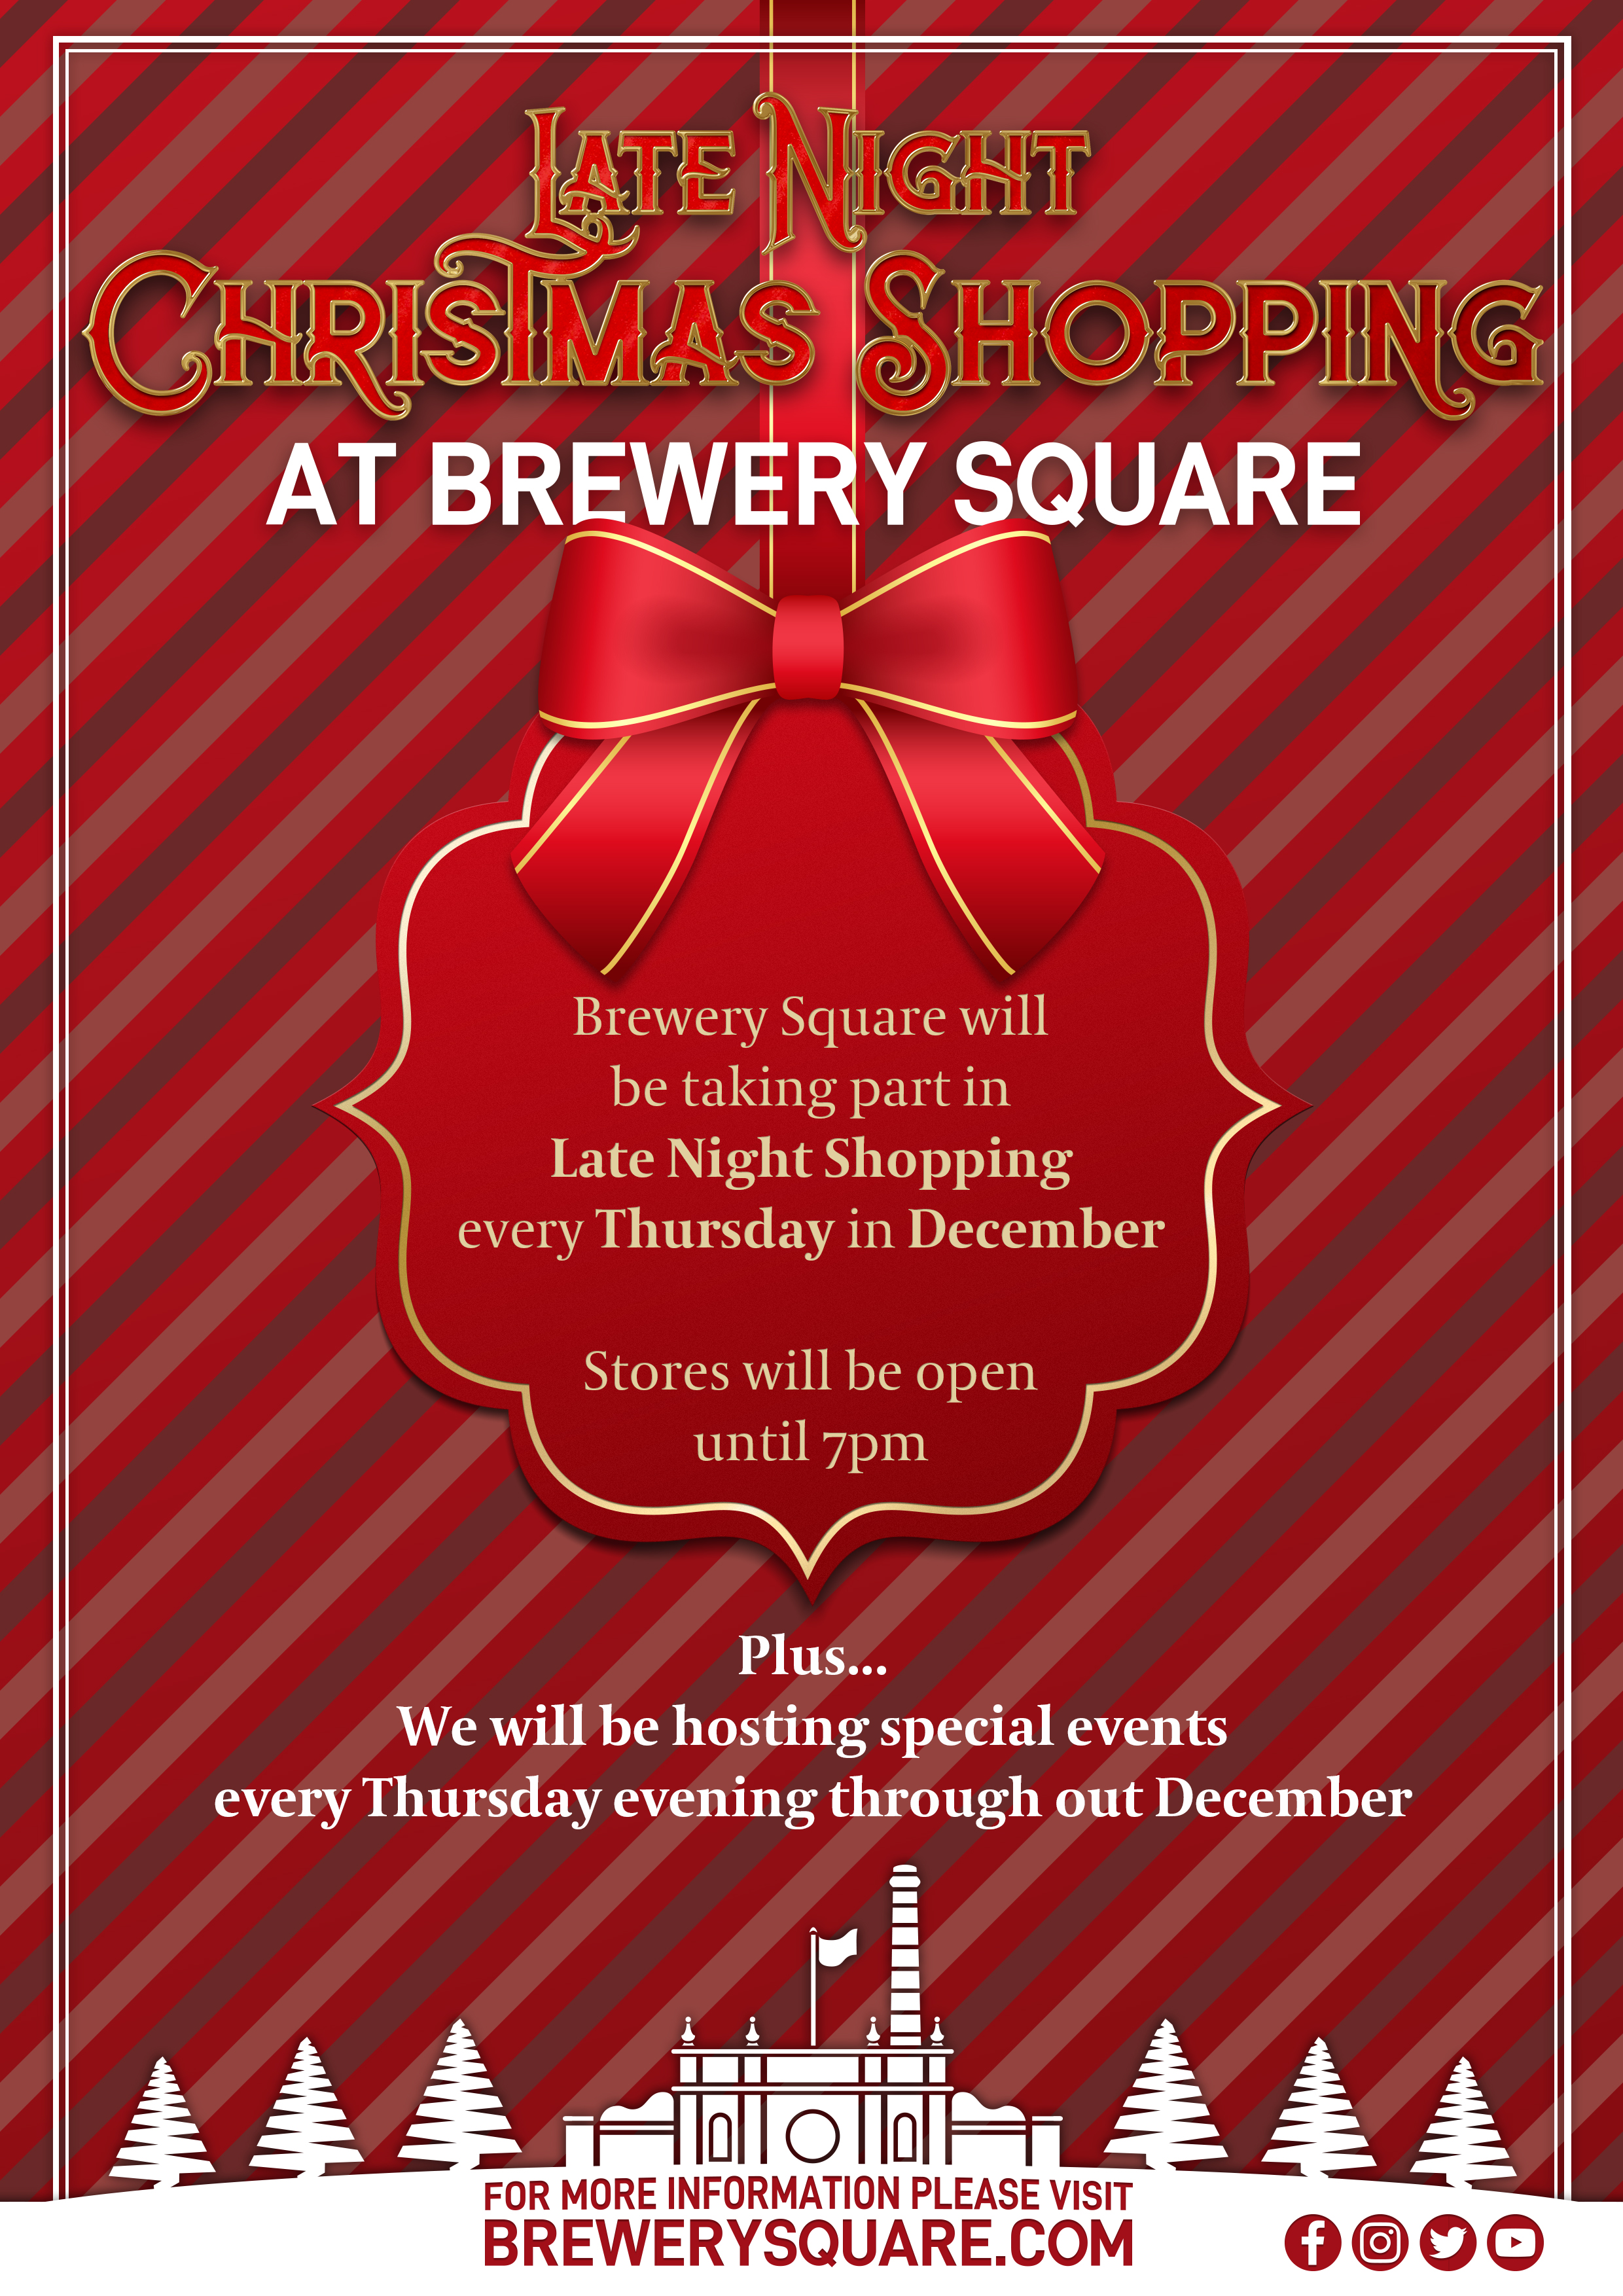 Late Night Christmas SHopping in Brewery Square Poster